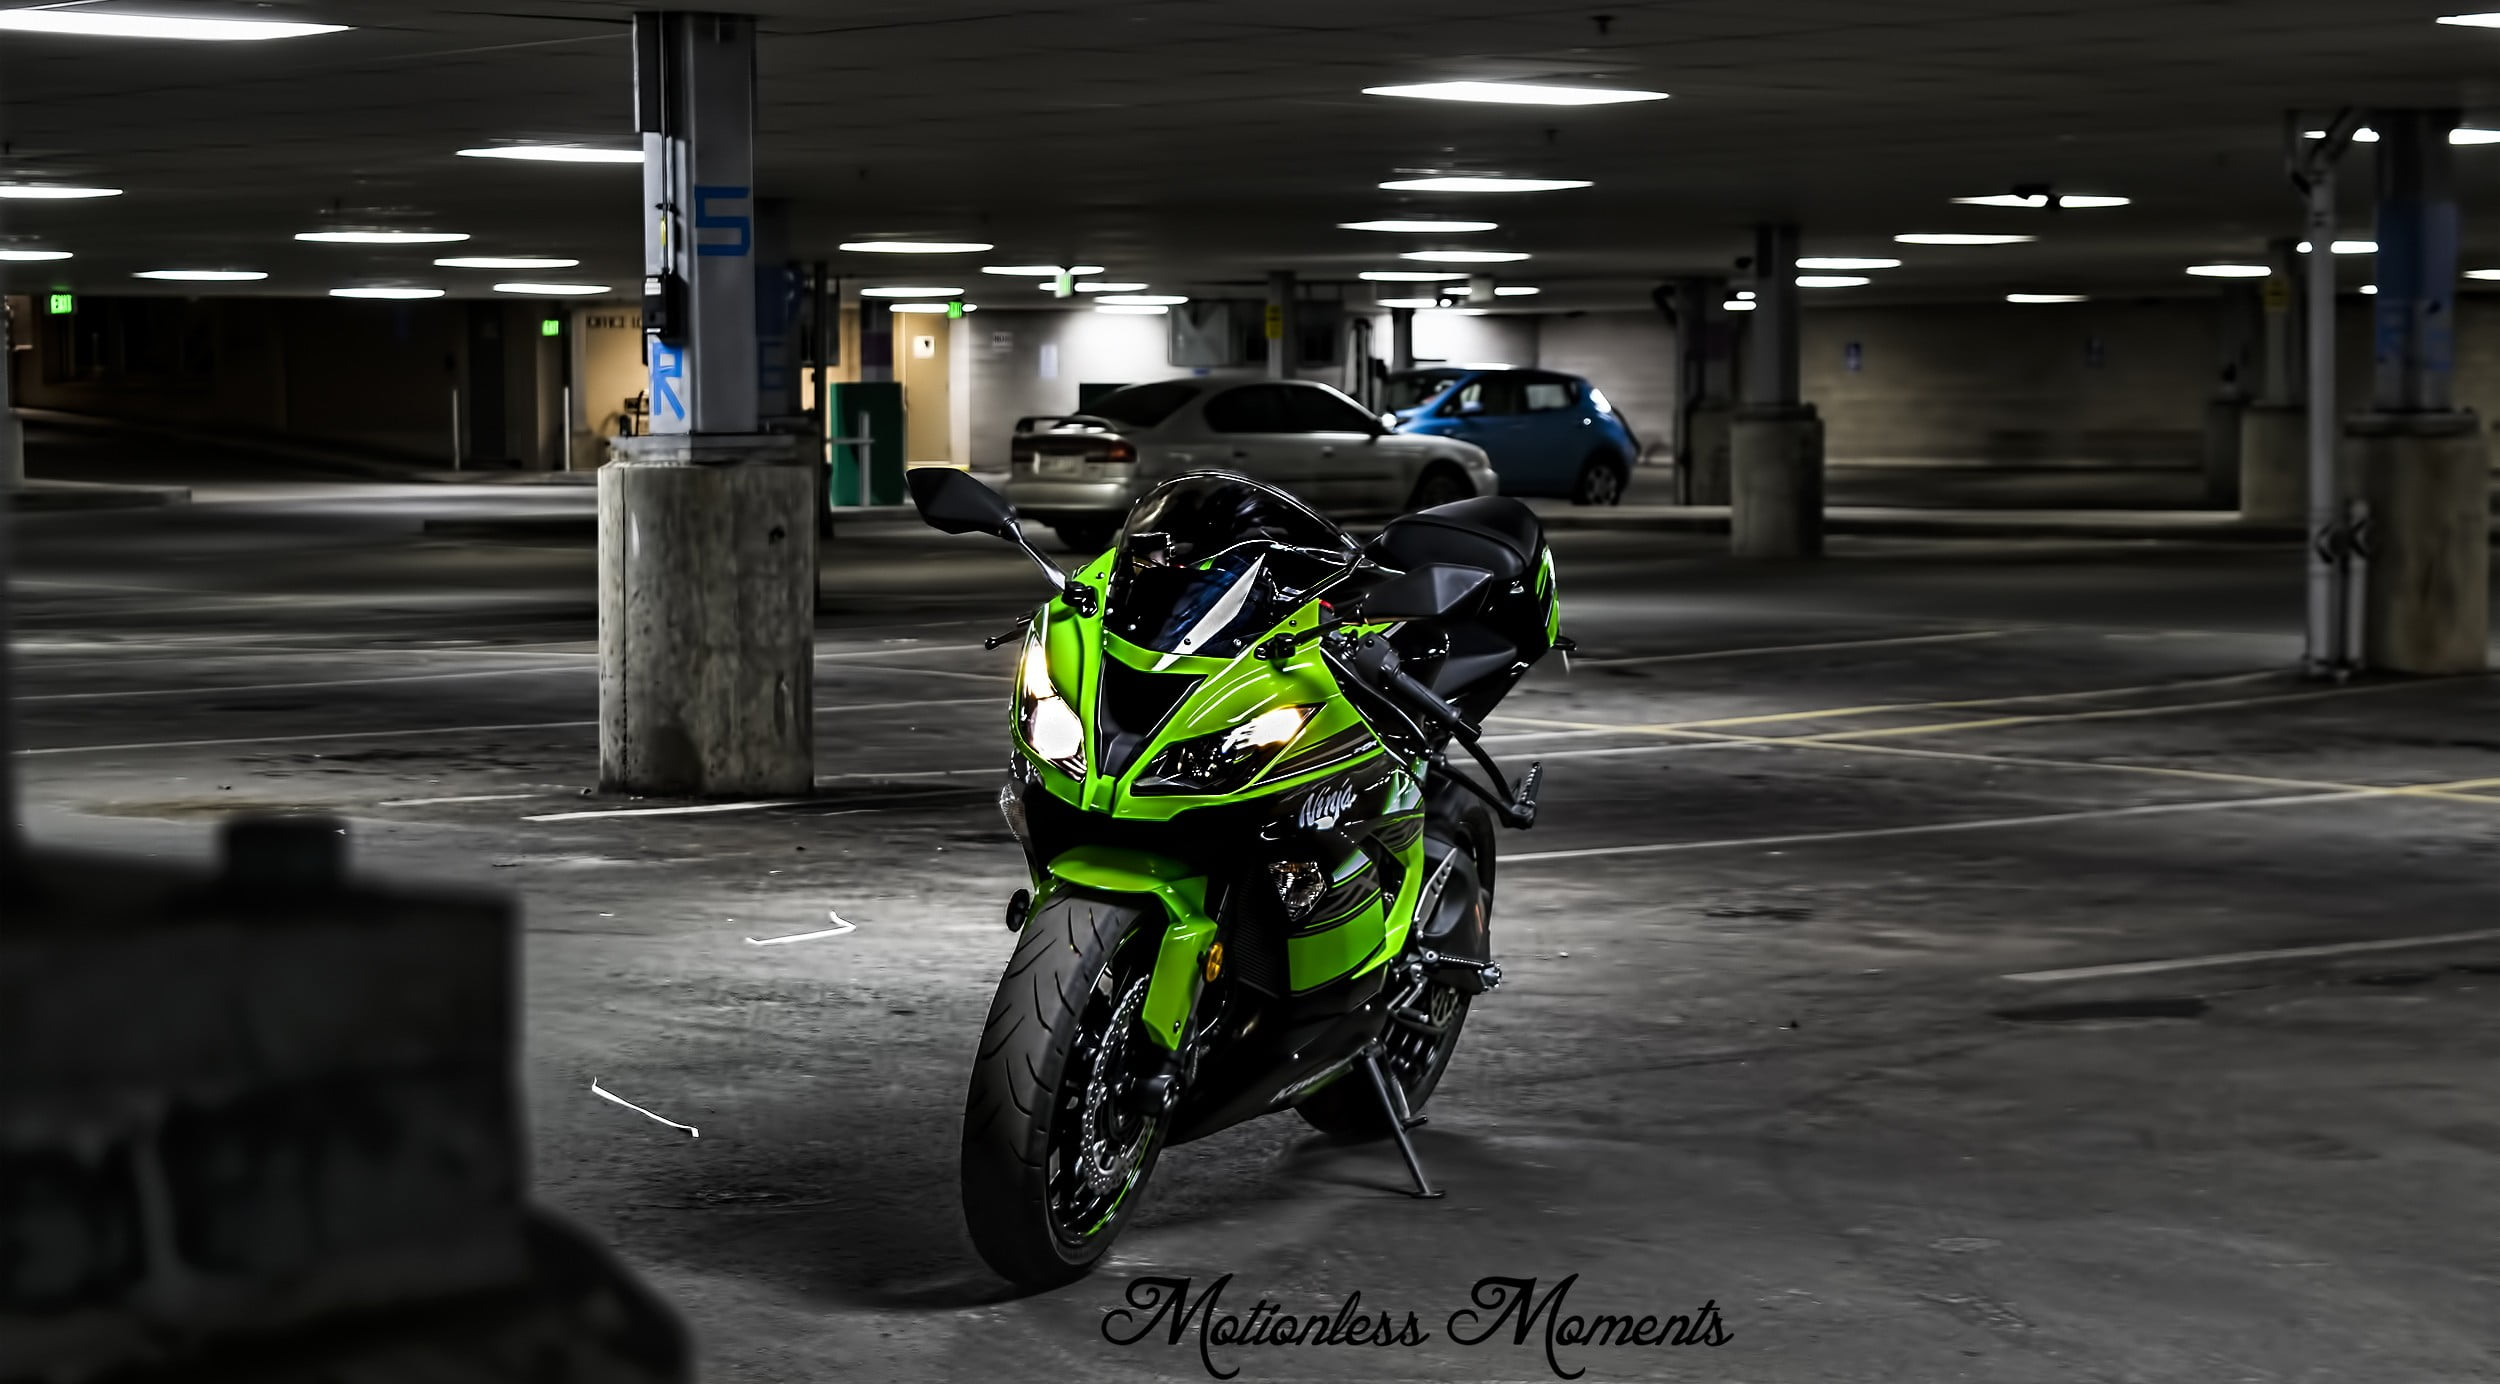 Green and black sports bike JDM zx6r motorcycle Kawasaki HD 2500x1384